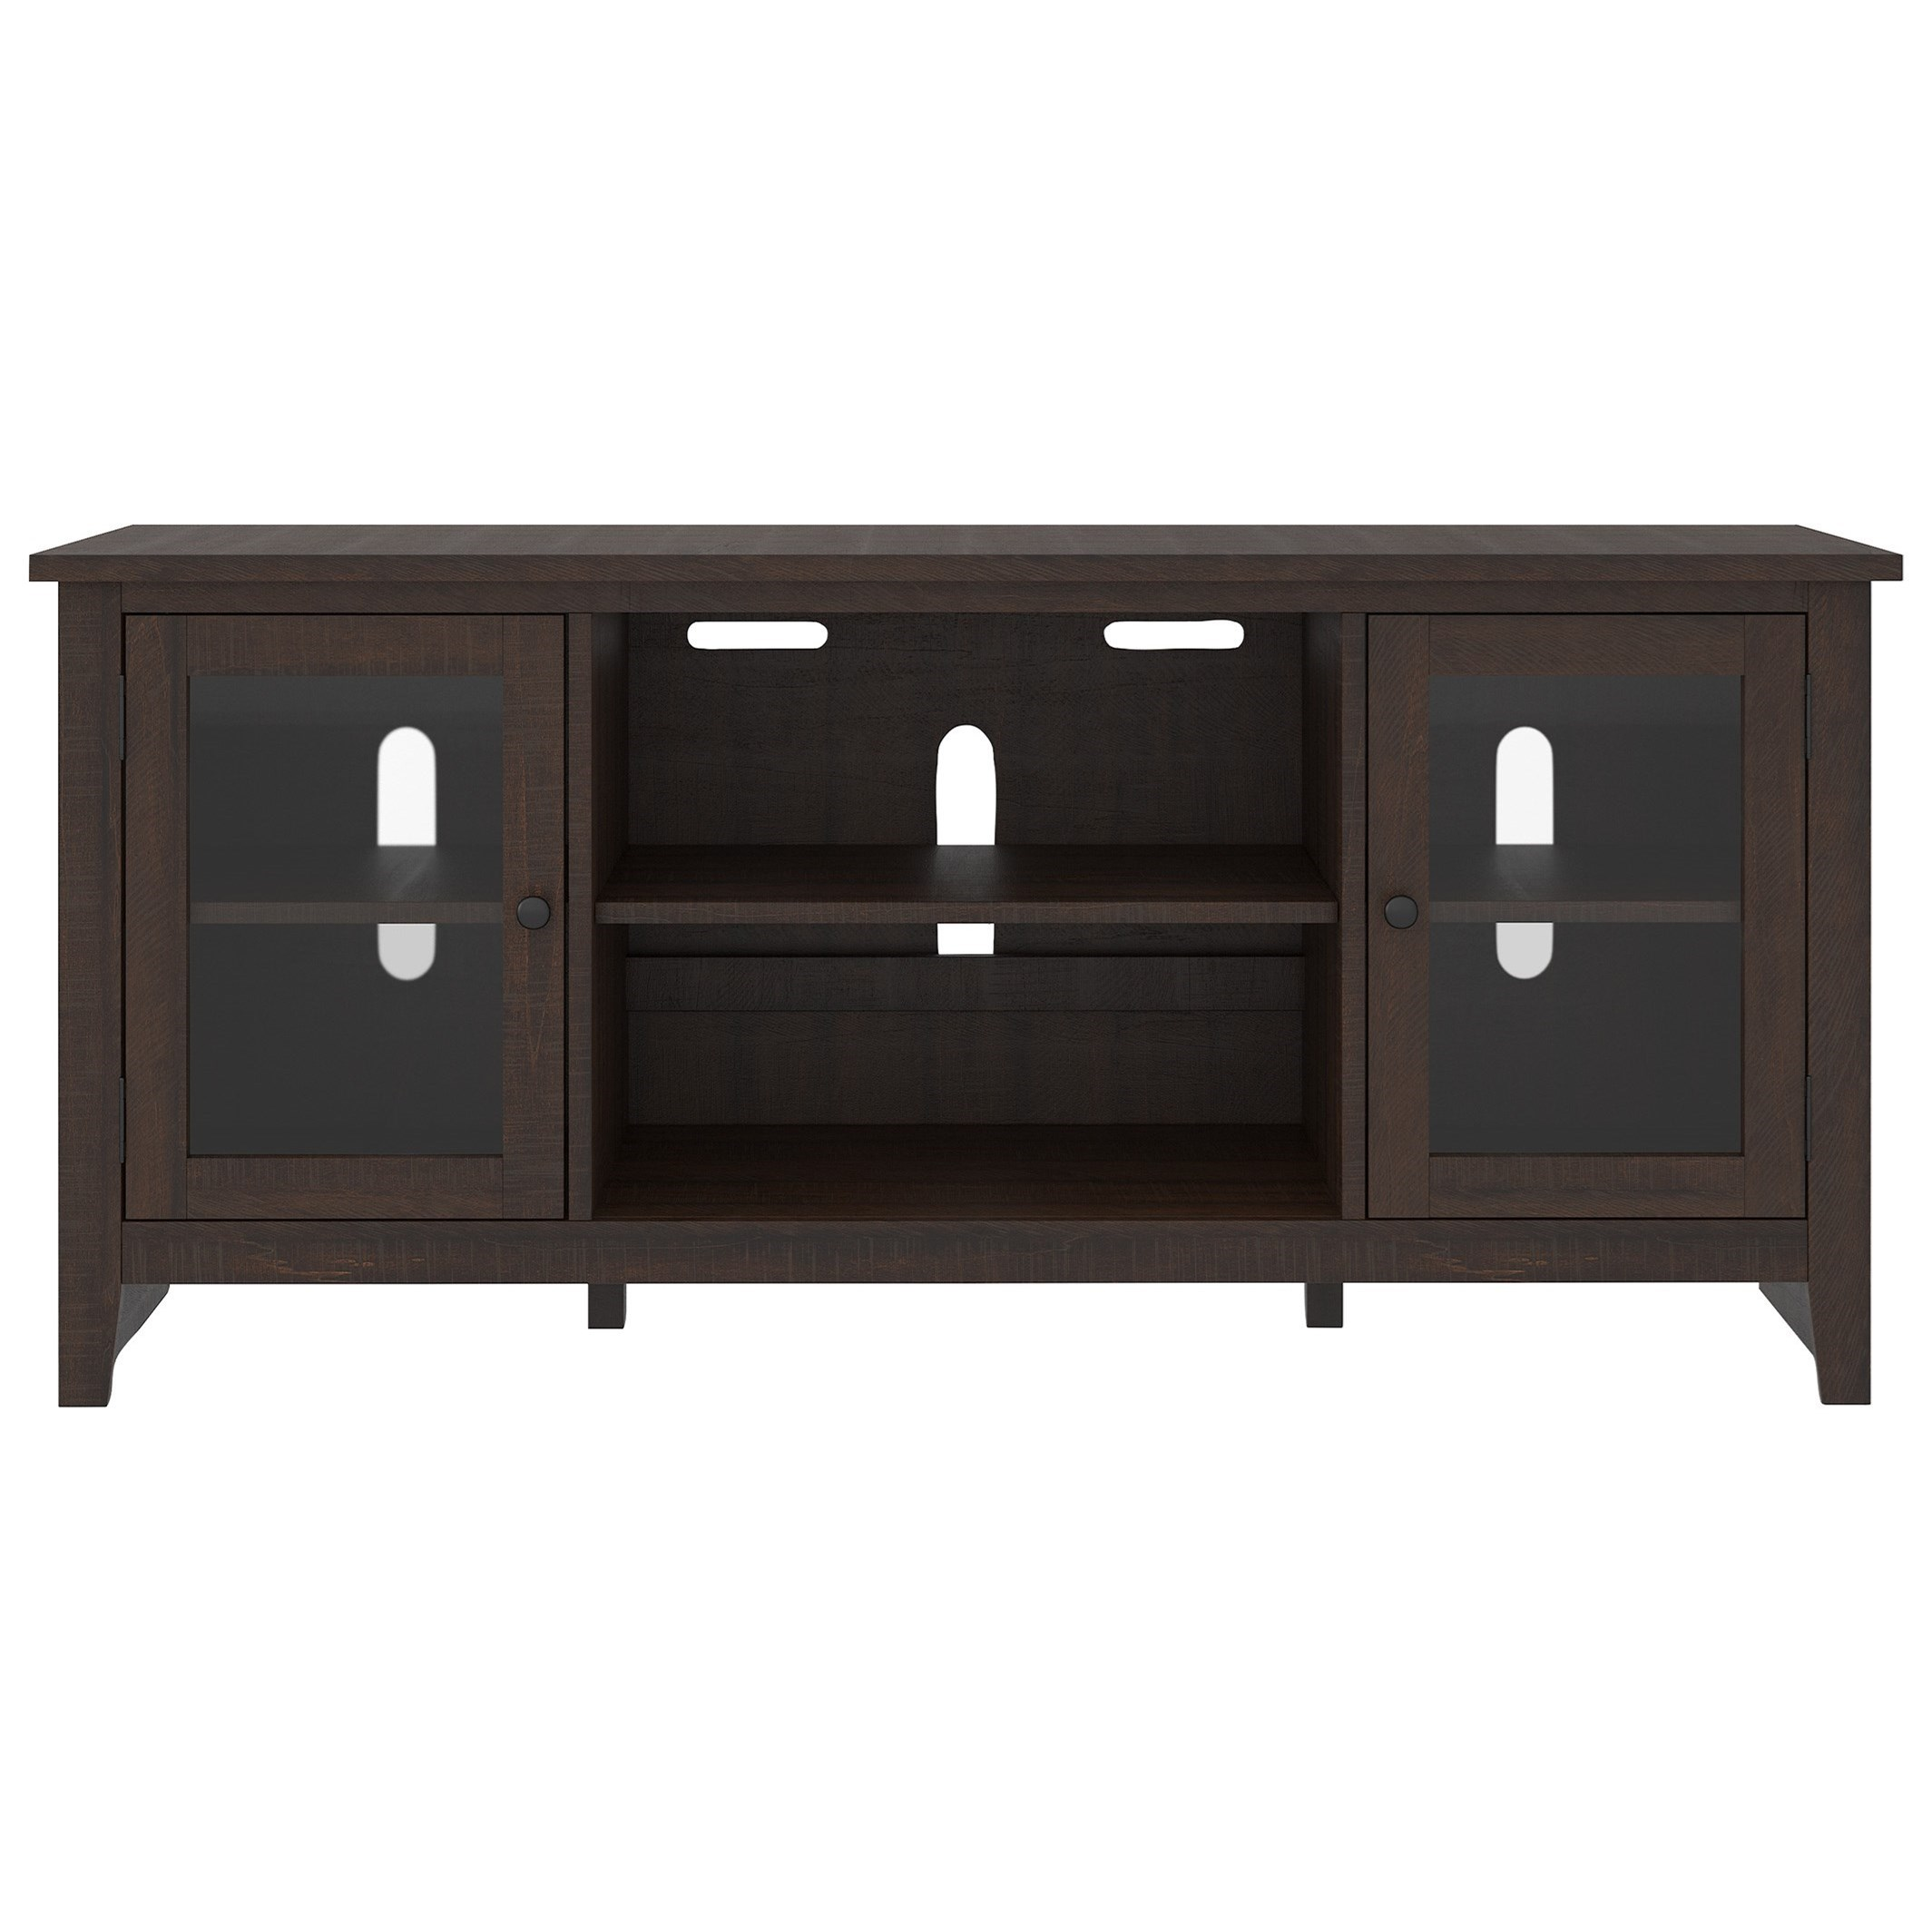 Camiburg Large TV Stand by Signature Design by Ashley at Standard Furniture